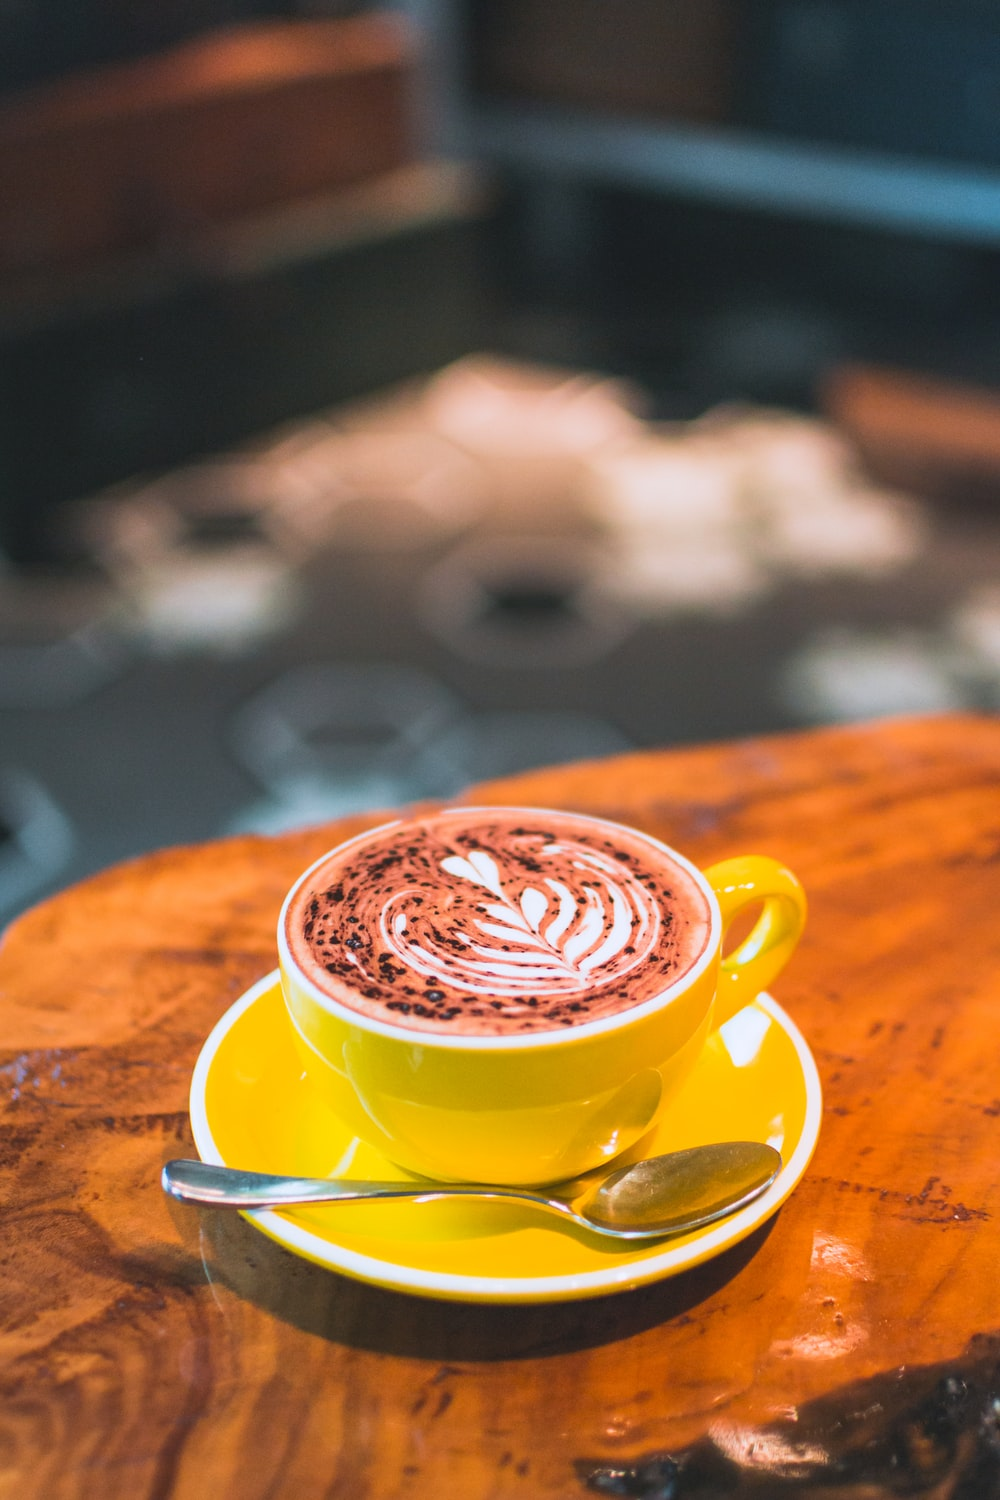 Creamy Latte Design On Yellow Coffee Mug With Saucer Photo Free Cup Image On Unsplash